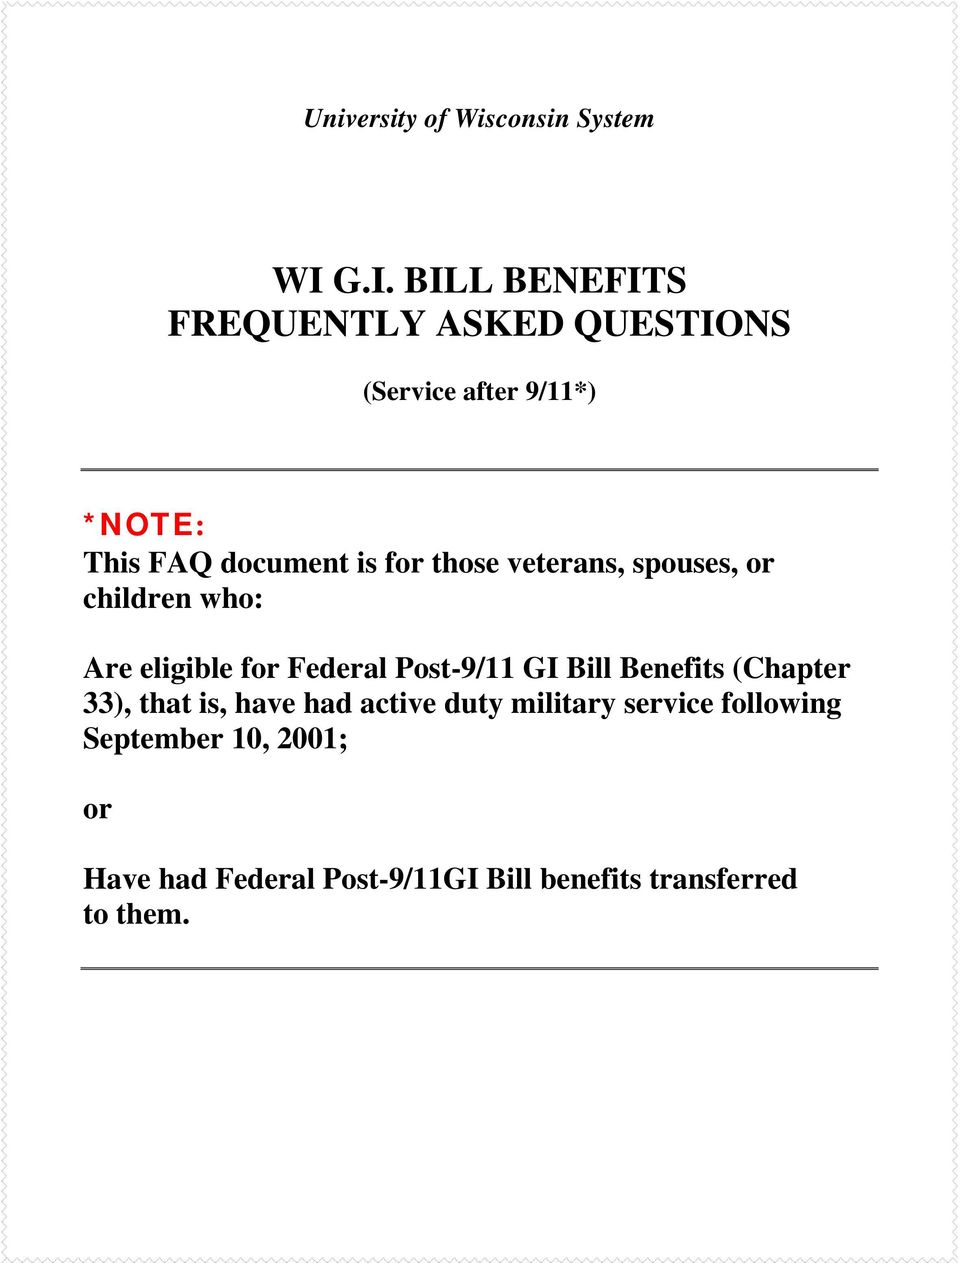 is for those veterans, spouses, or children who: Are eligible for Federal Post-9/11 GI Bill